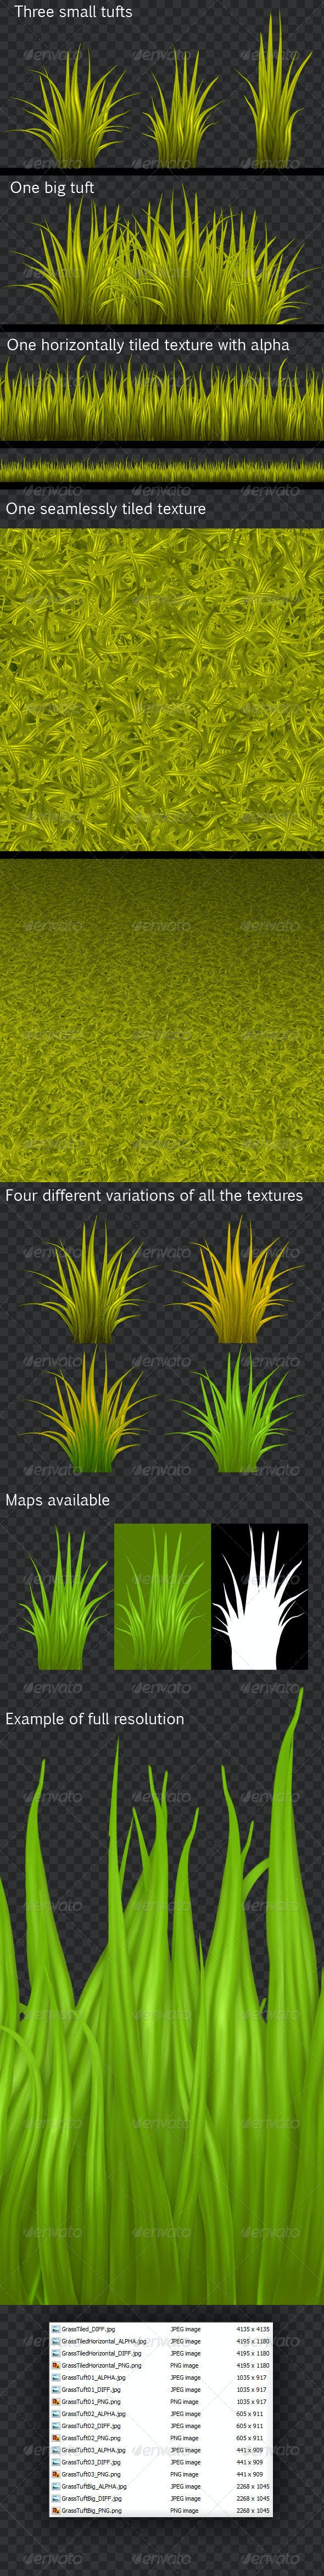 HQ Pack of Painted Grass Textures - 3DOcean Item for Sale